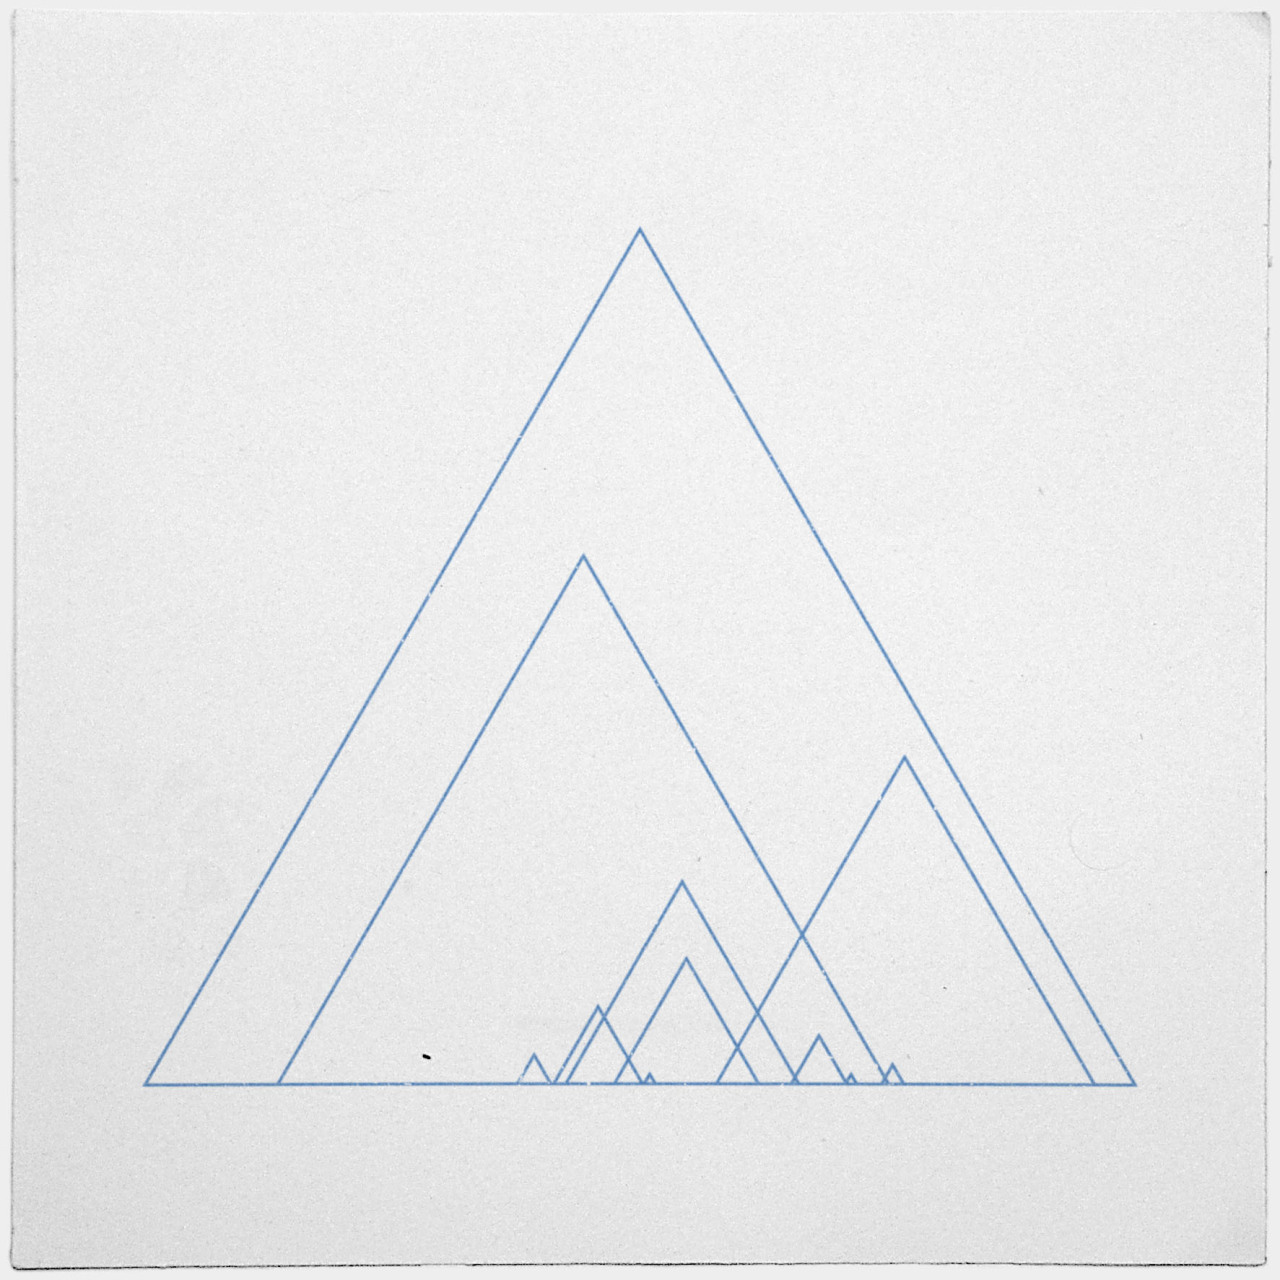 geometrydaily:  #390 Grand ridge – A new minimal geometric composition each day